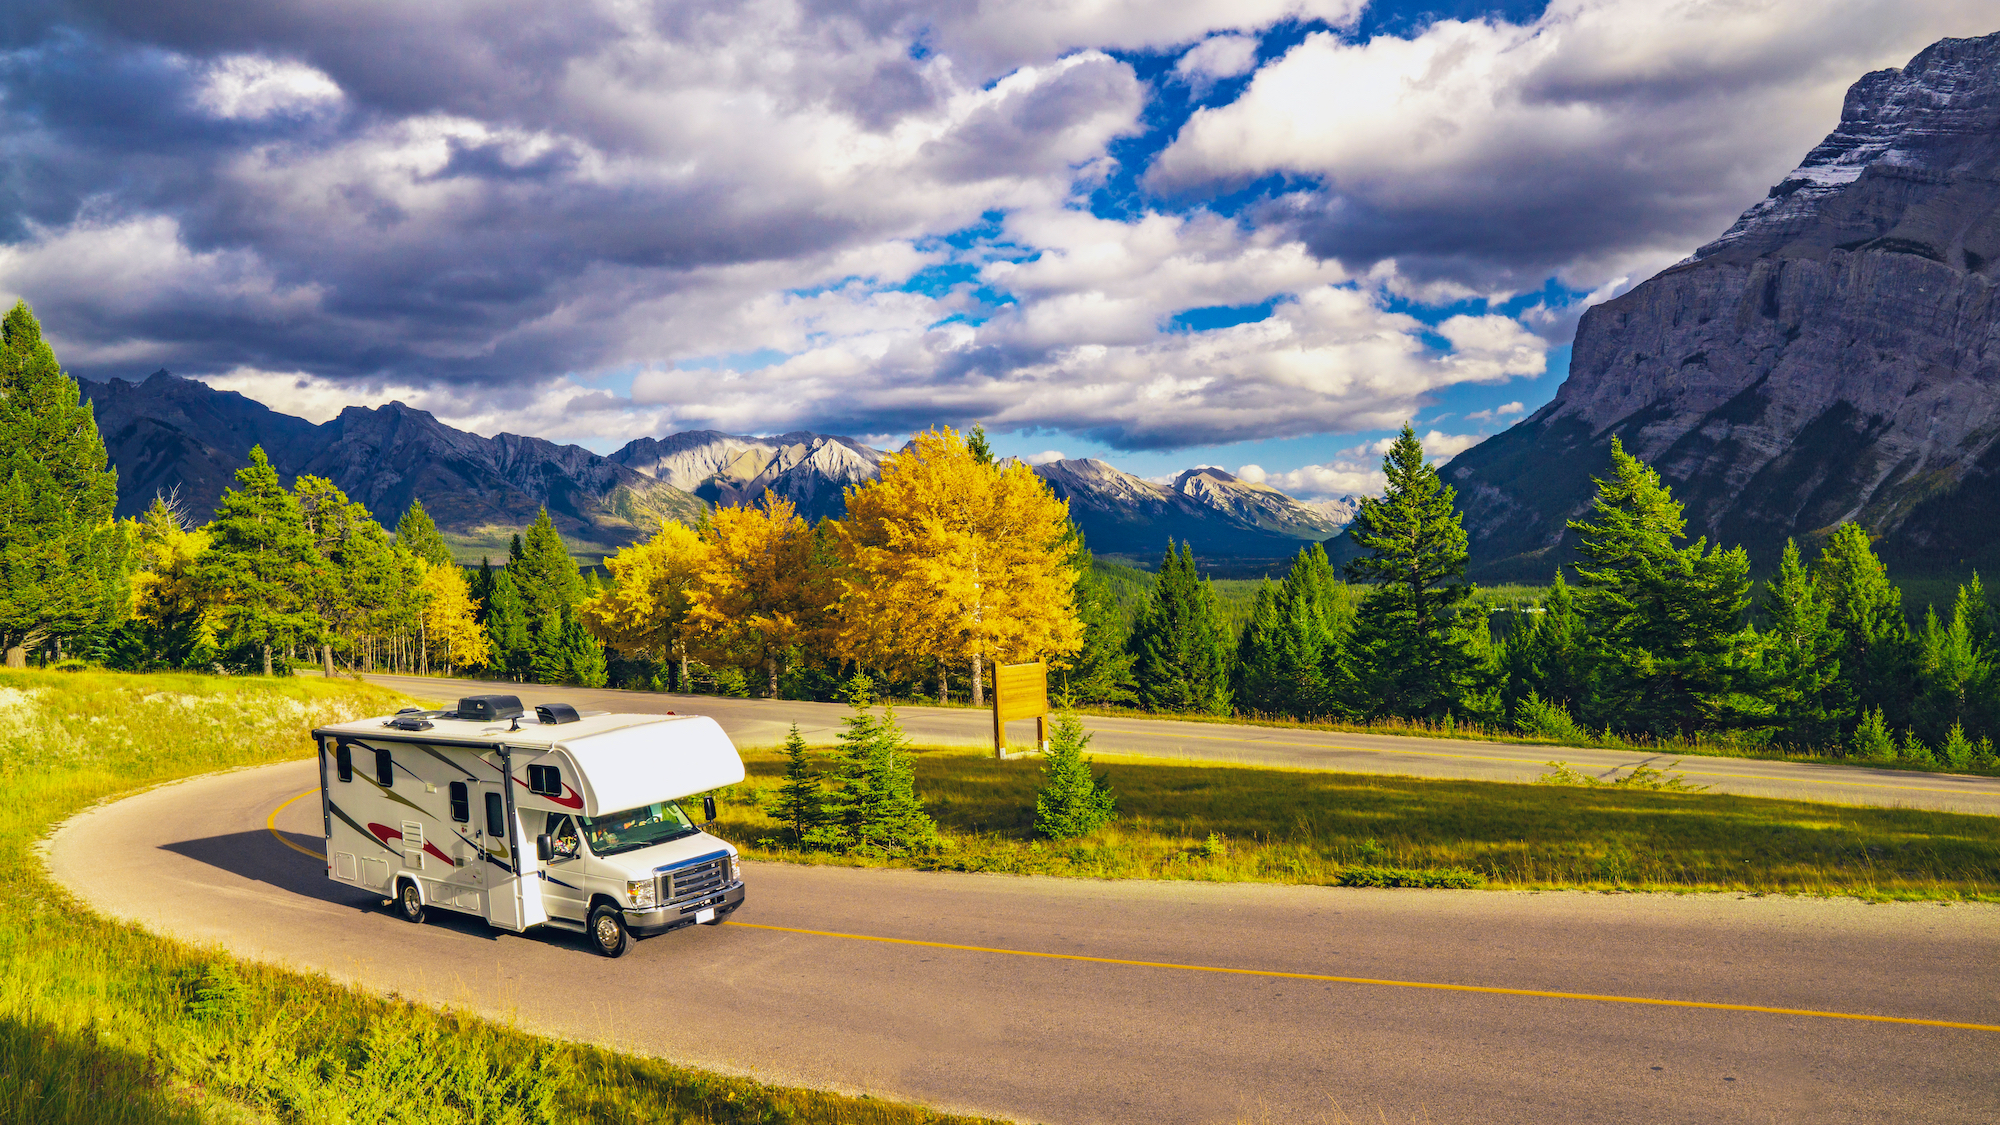 Autumn RV Motor home Camper On Scenic Highway